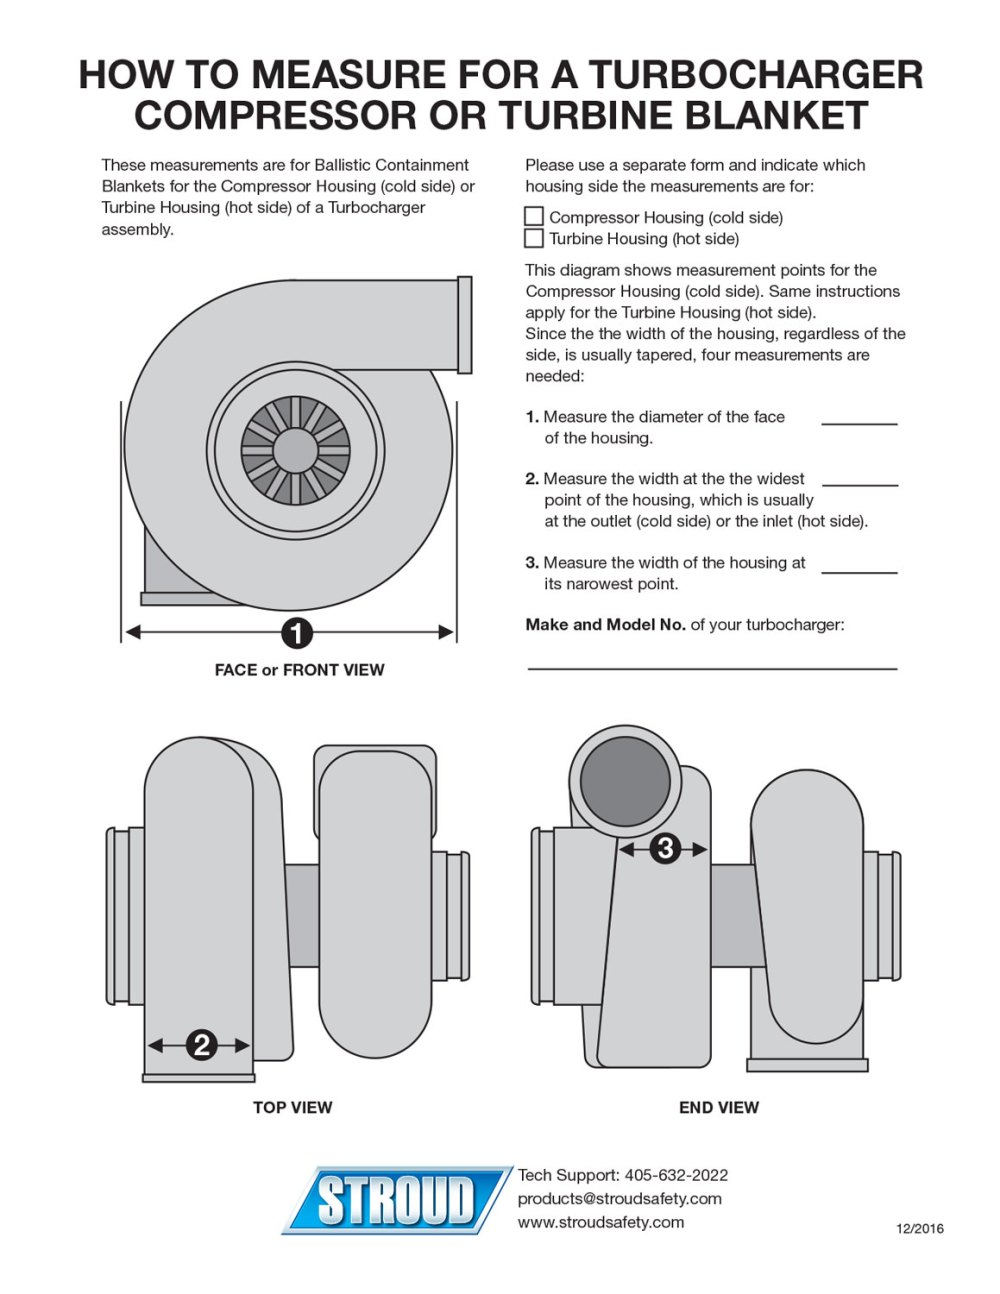 medium resolution of download the how to measure for a turbocharger compressor or turbine blanket instruction sheet here